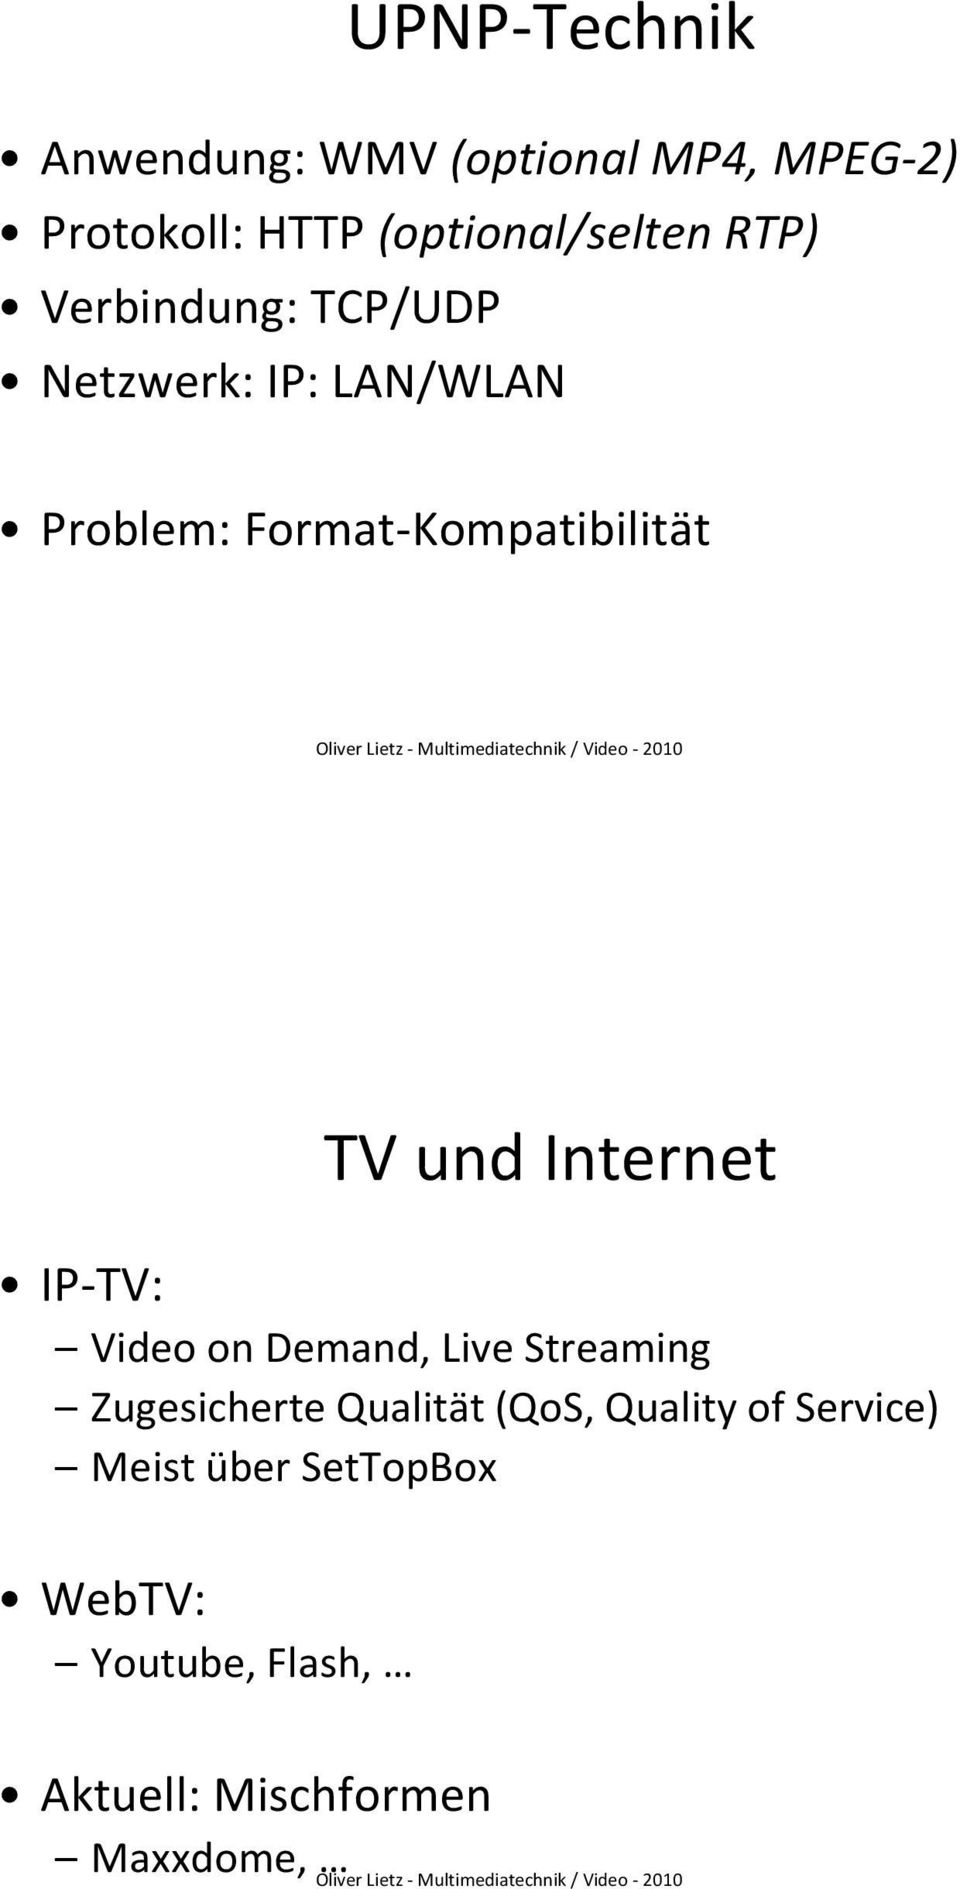 und Internet IP-TV: Video on Demand, Live Streaming Zugesicherte Qualität (QoS,